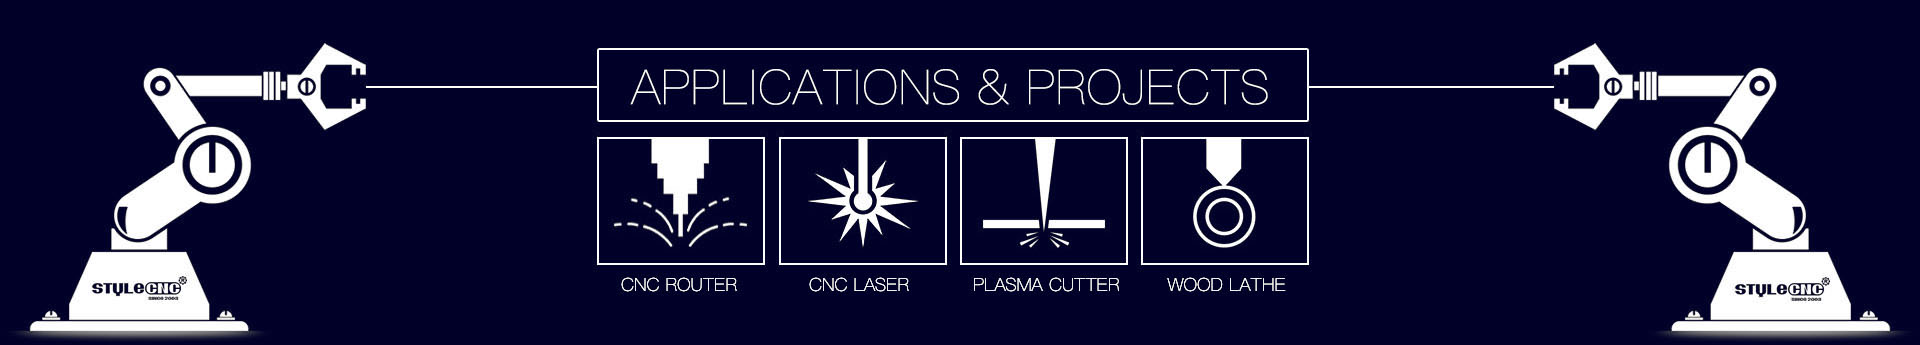 Laser Marking Machine Projects